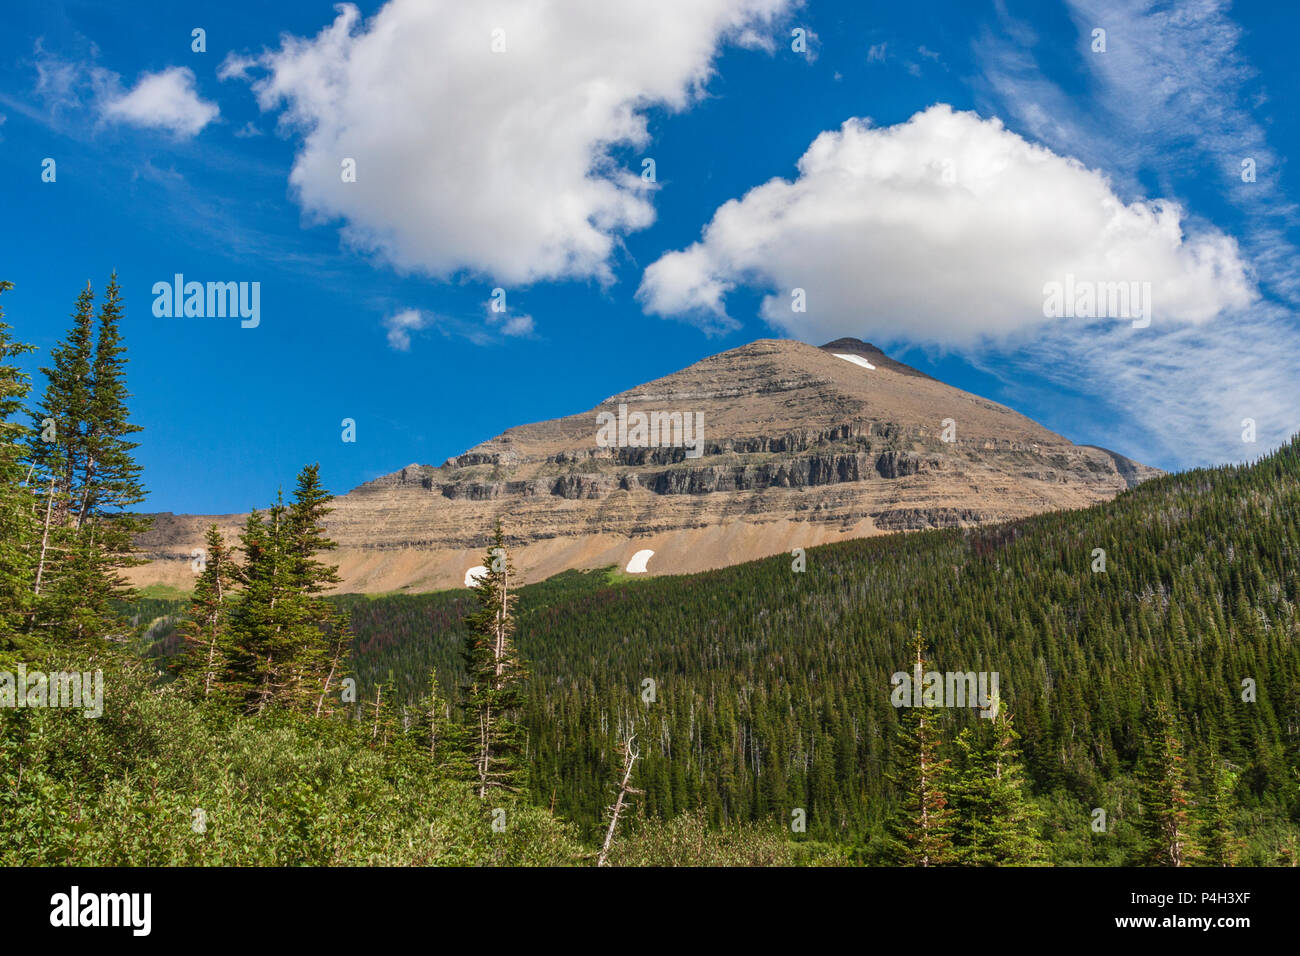 Siyeh Mountain in Glacier National Park in Montana. This is the fifth tallest mountain in Glacier NP, and one of six over 10,000 ft in the park. - Stock Image